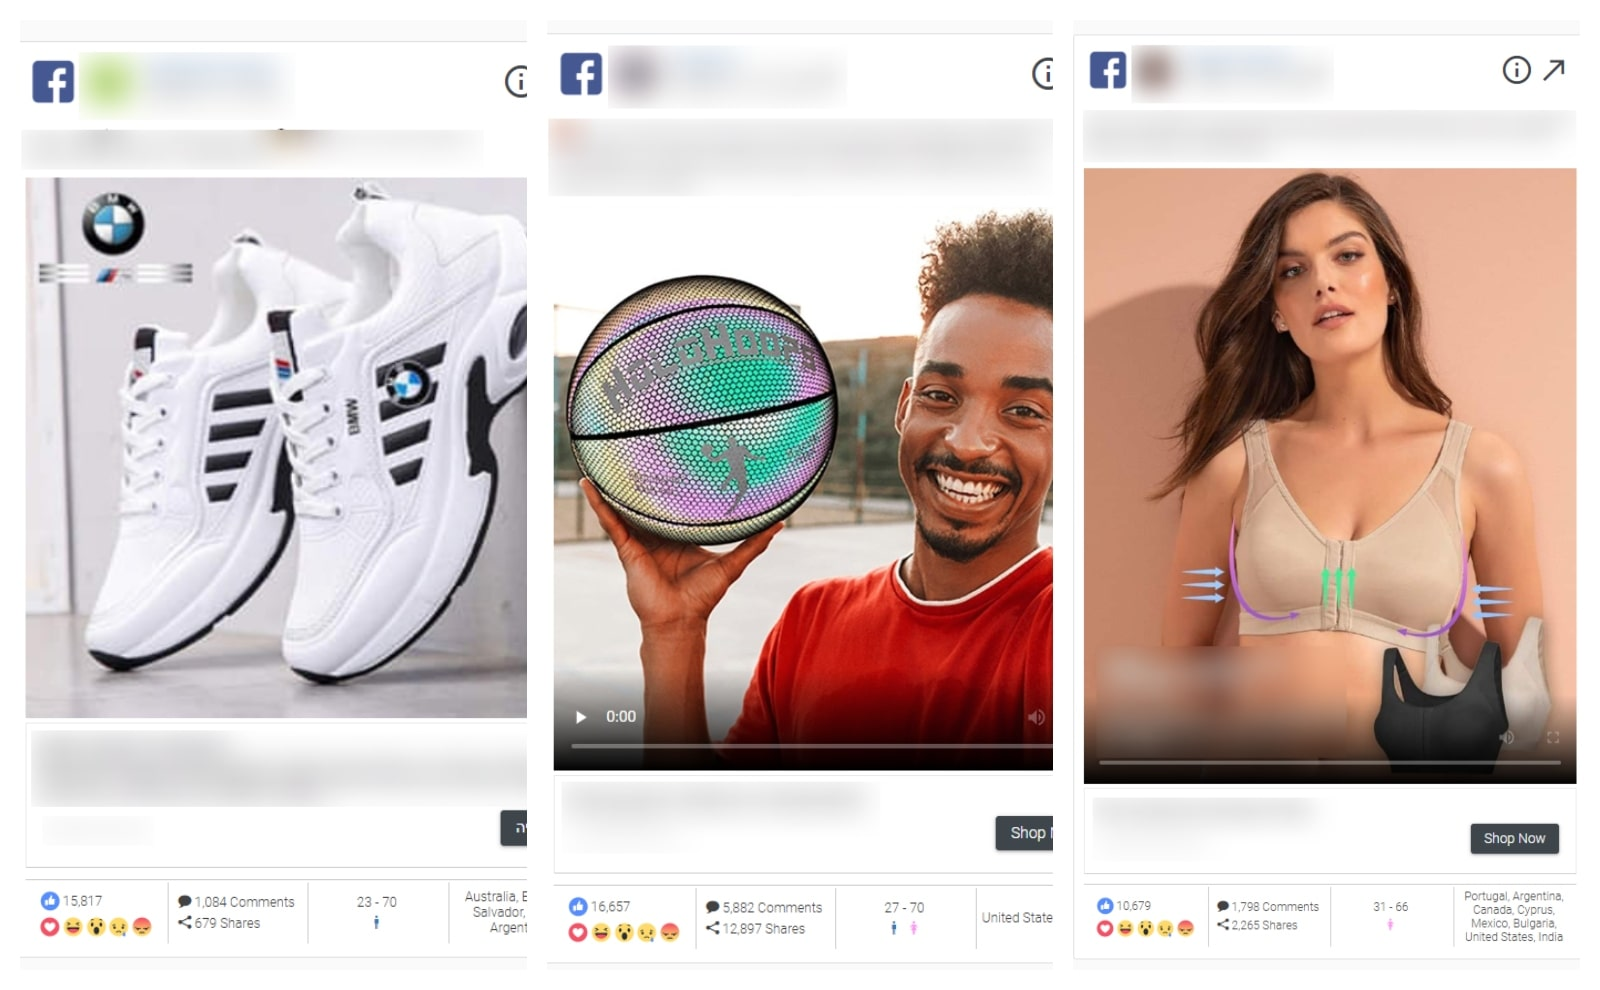 Examples of dropshipping ads on Facebook advertising sneakers, a basketball and a sports top